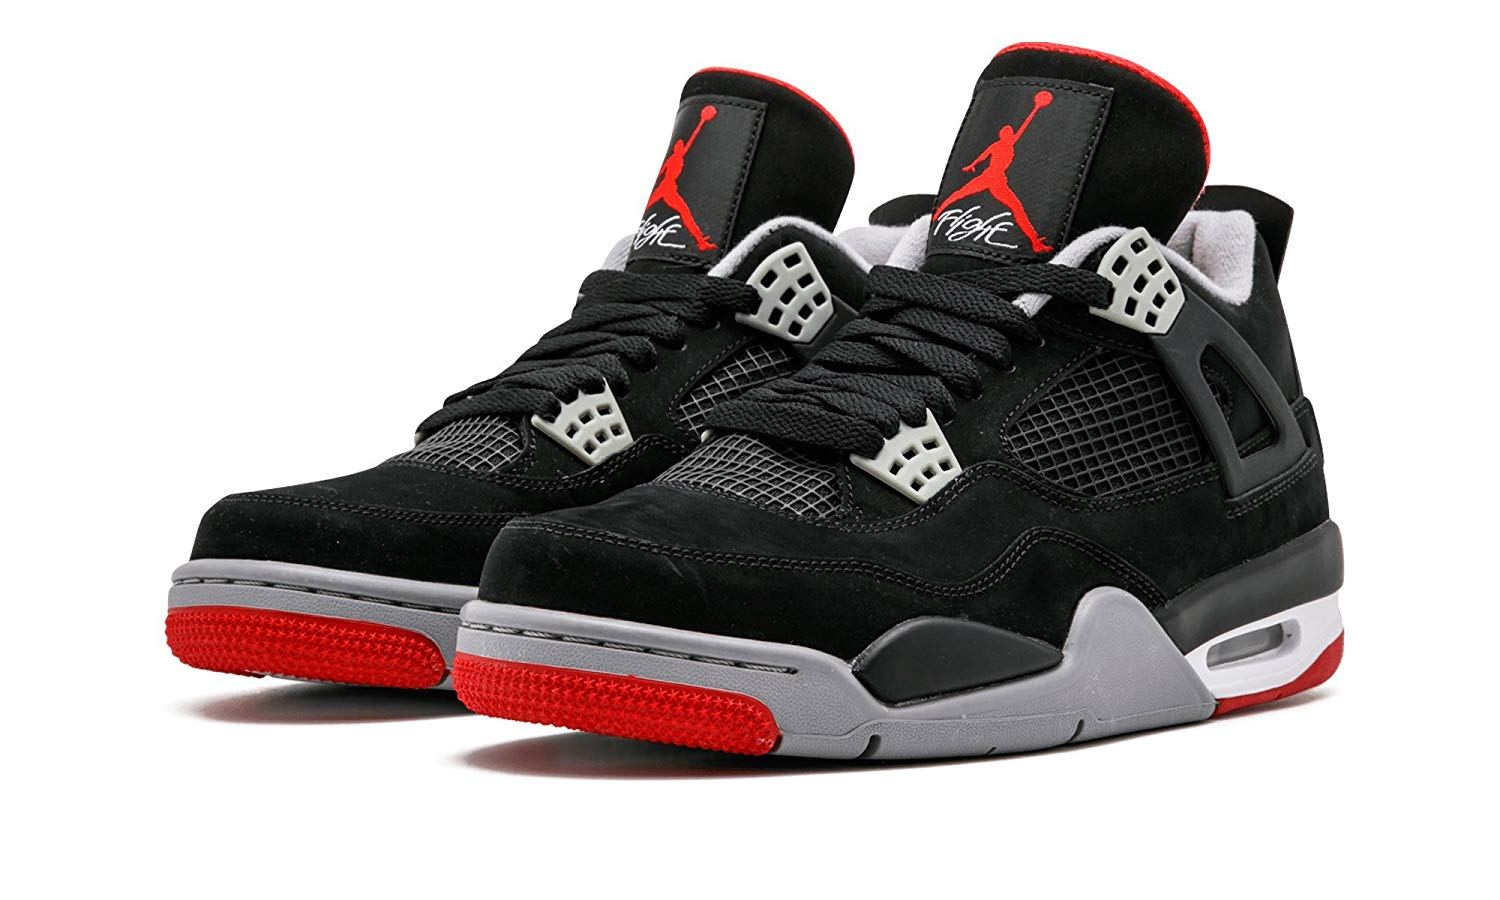 quality design cb4a3 07d4a Home News Air Jordan 4 Bred (2019)  Release Date, Photo, And Details. Bred  4 2019